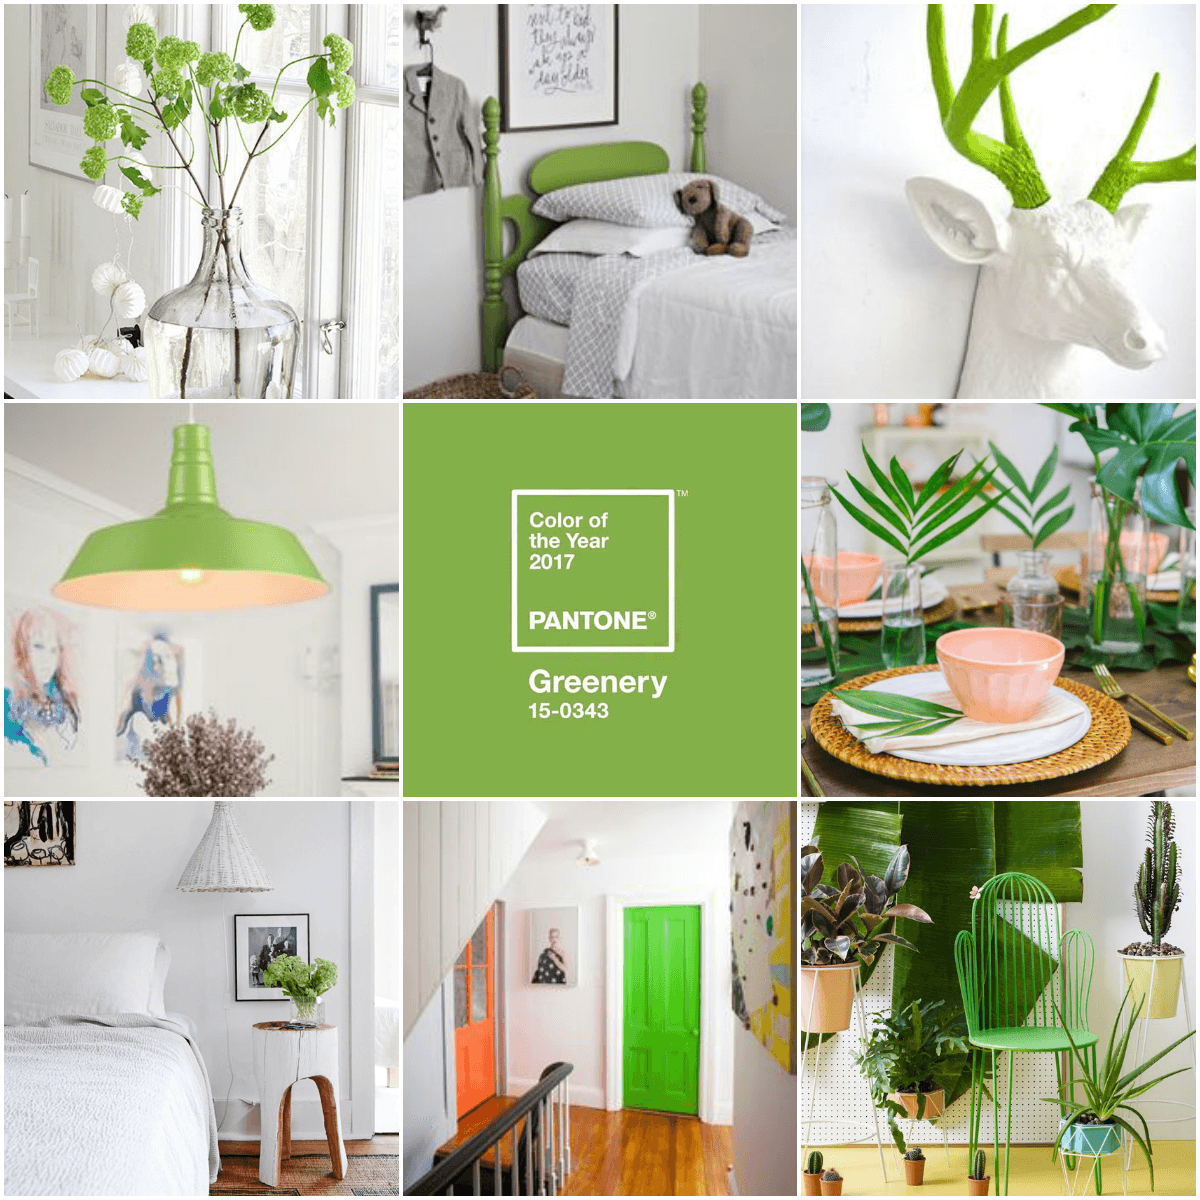 Pantone Greenery Pantone Reveals The Colour Of The Year For 2017 Greenery